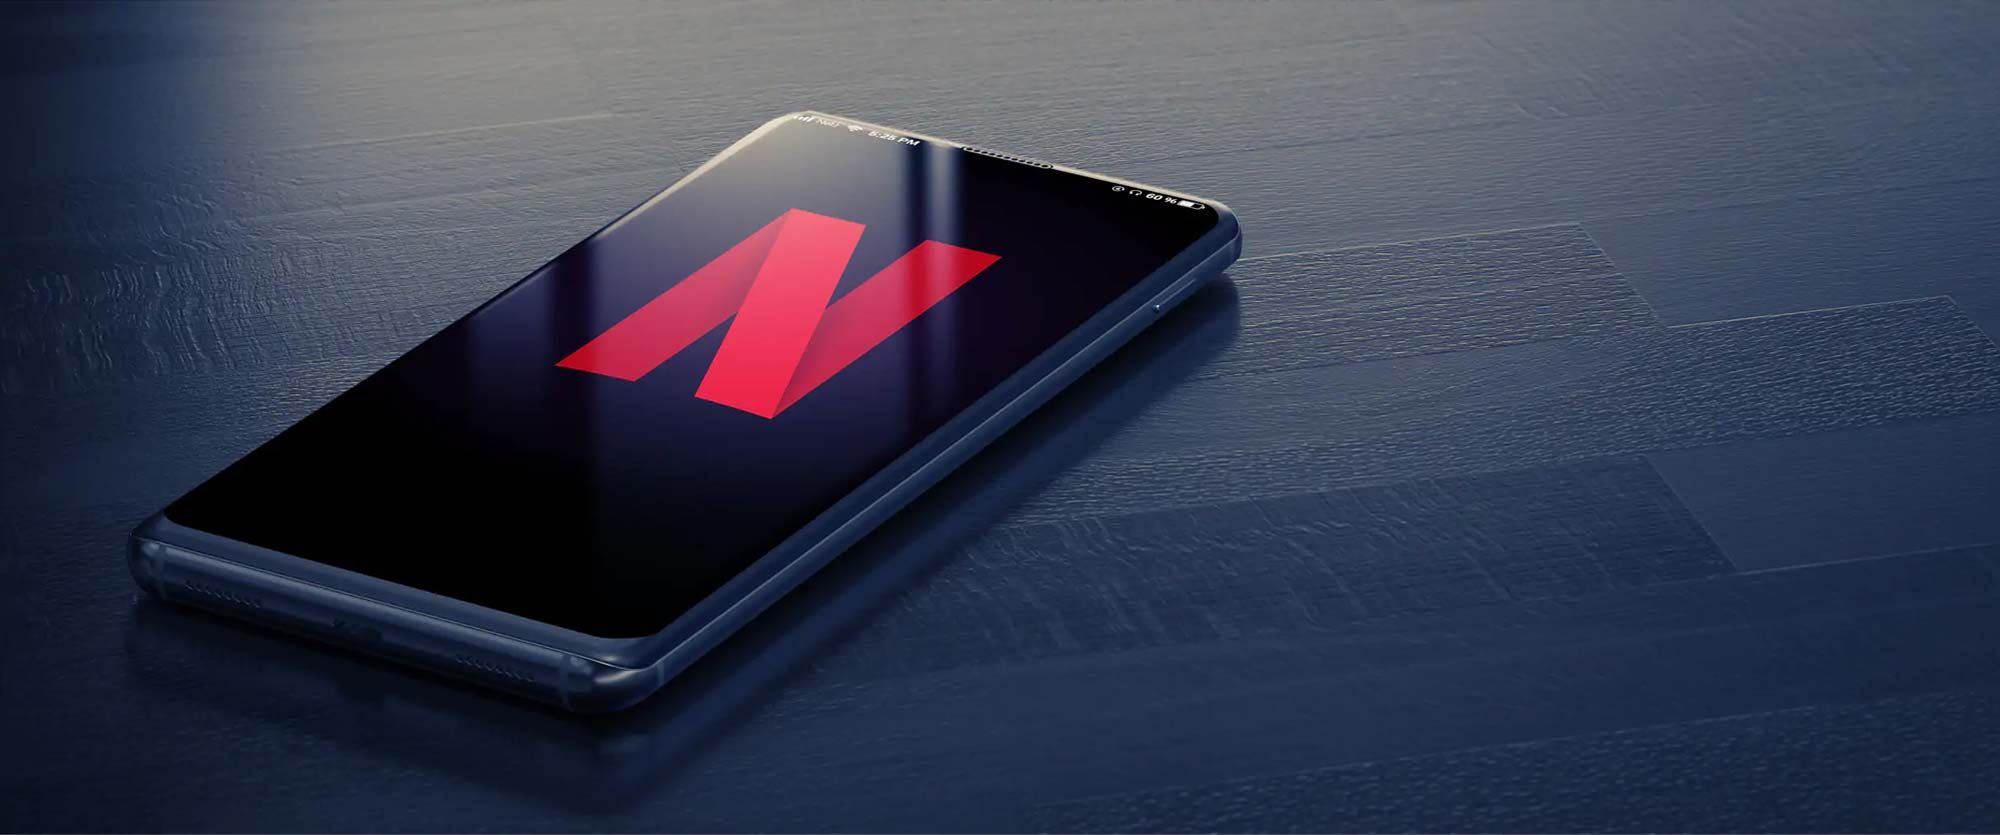 Netflix red logo on iPhone X resting on dark-blue wooden surface